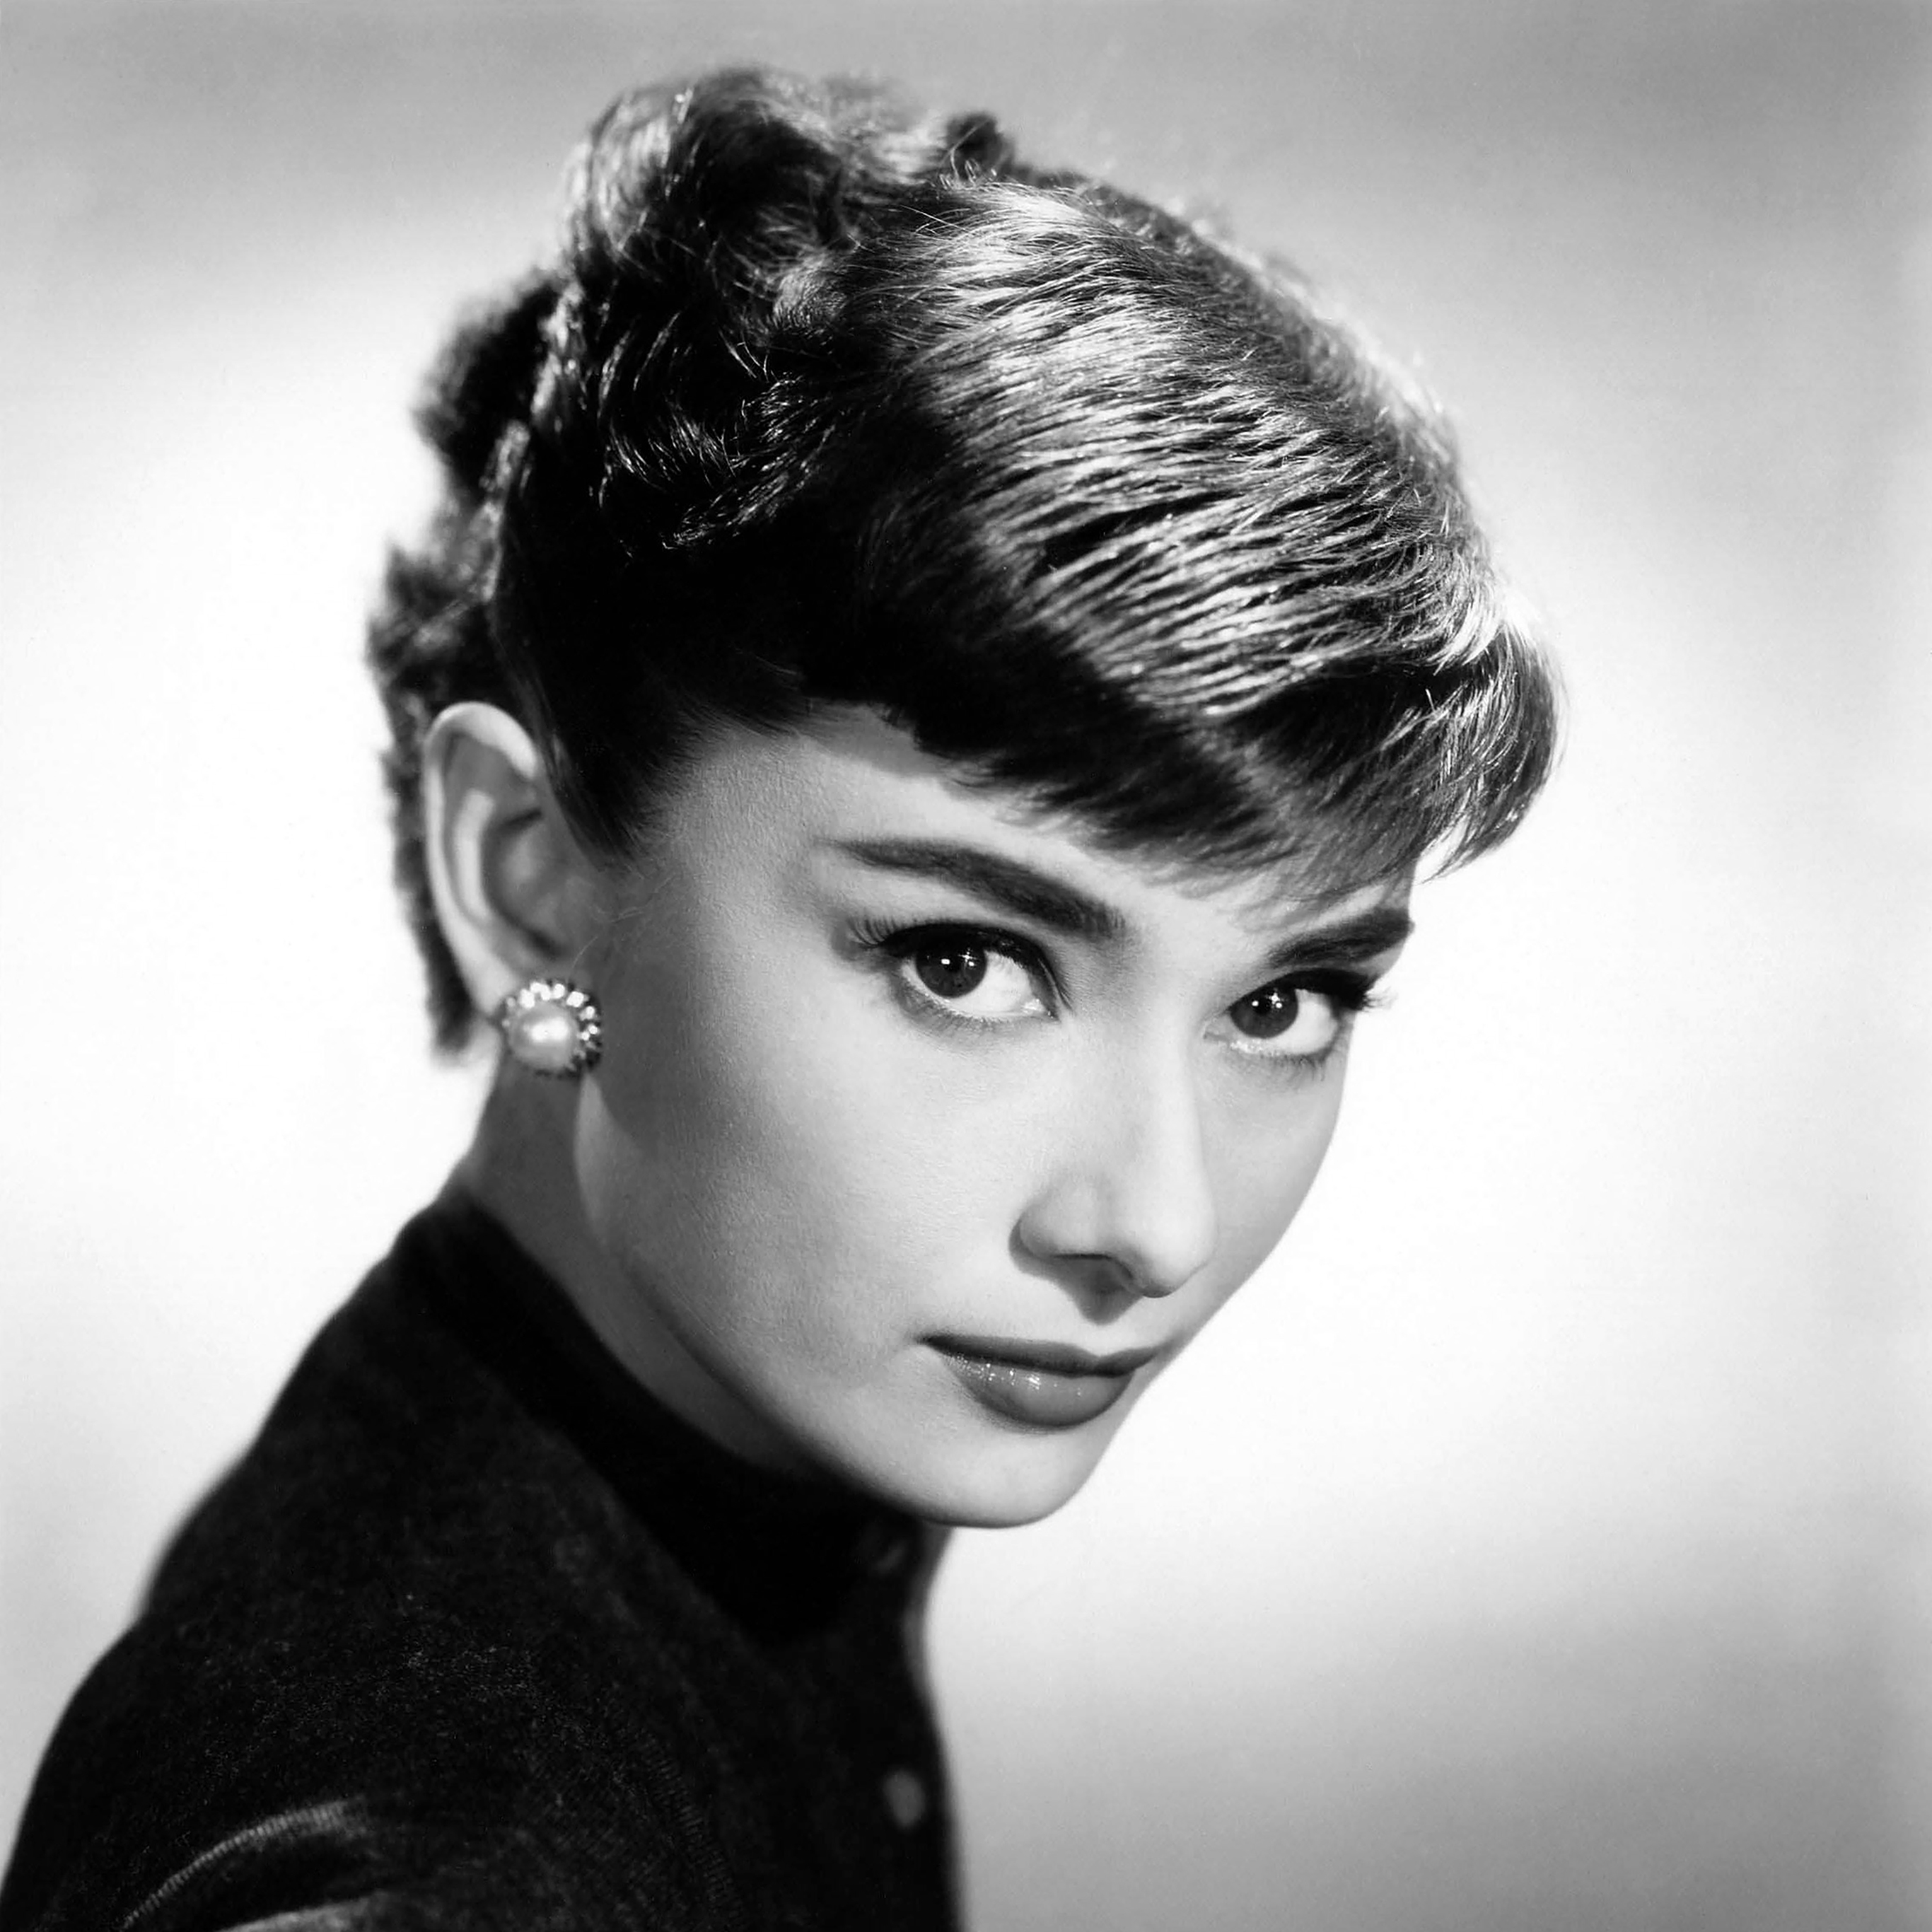 Hd87 Audrey Hepburn Sexy Classic Celebrity Papers Co